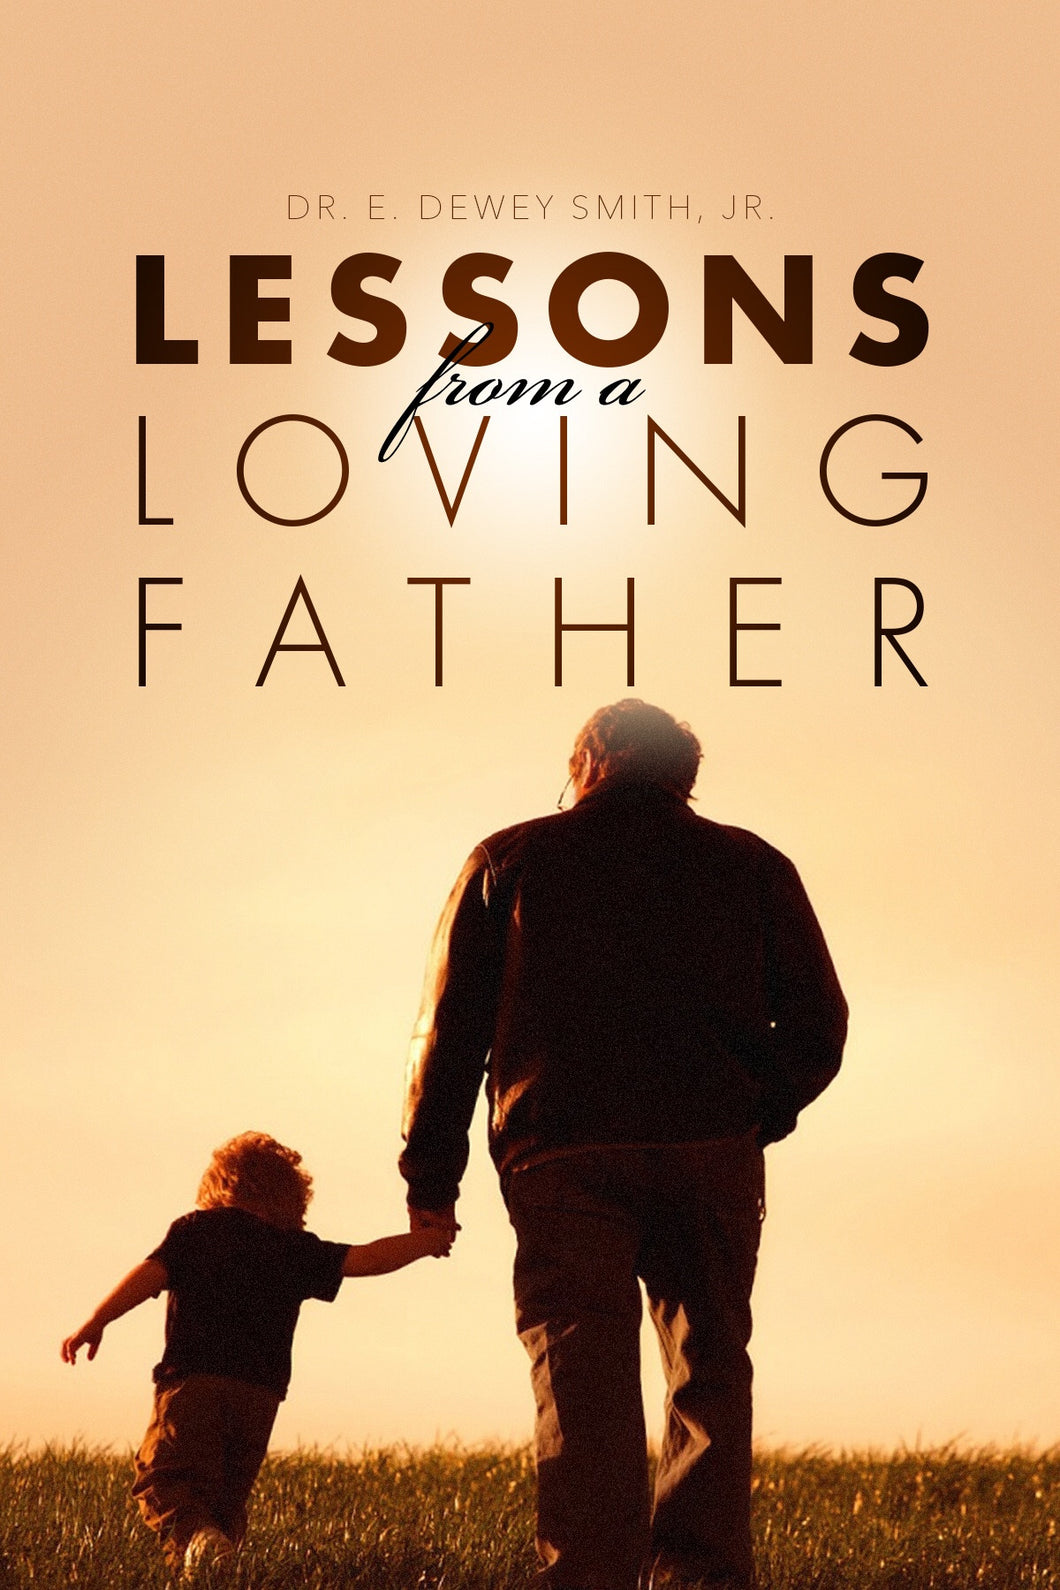 Lessons from a Loving Father